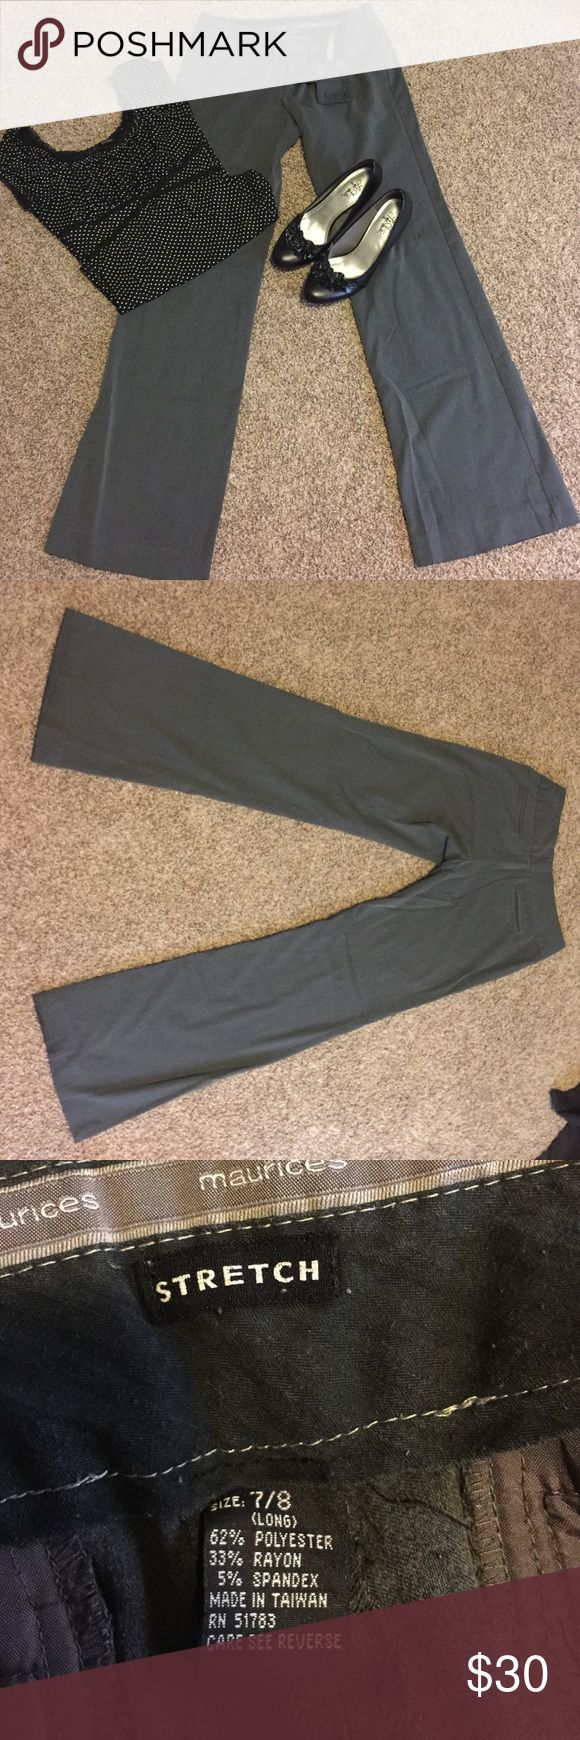 Grey Dress pants Stretch dress pants, long length, very new condition Maurices Pants Boot Cut & Flare